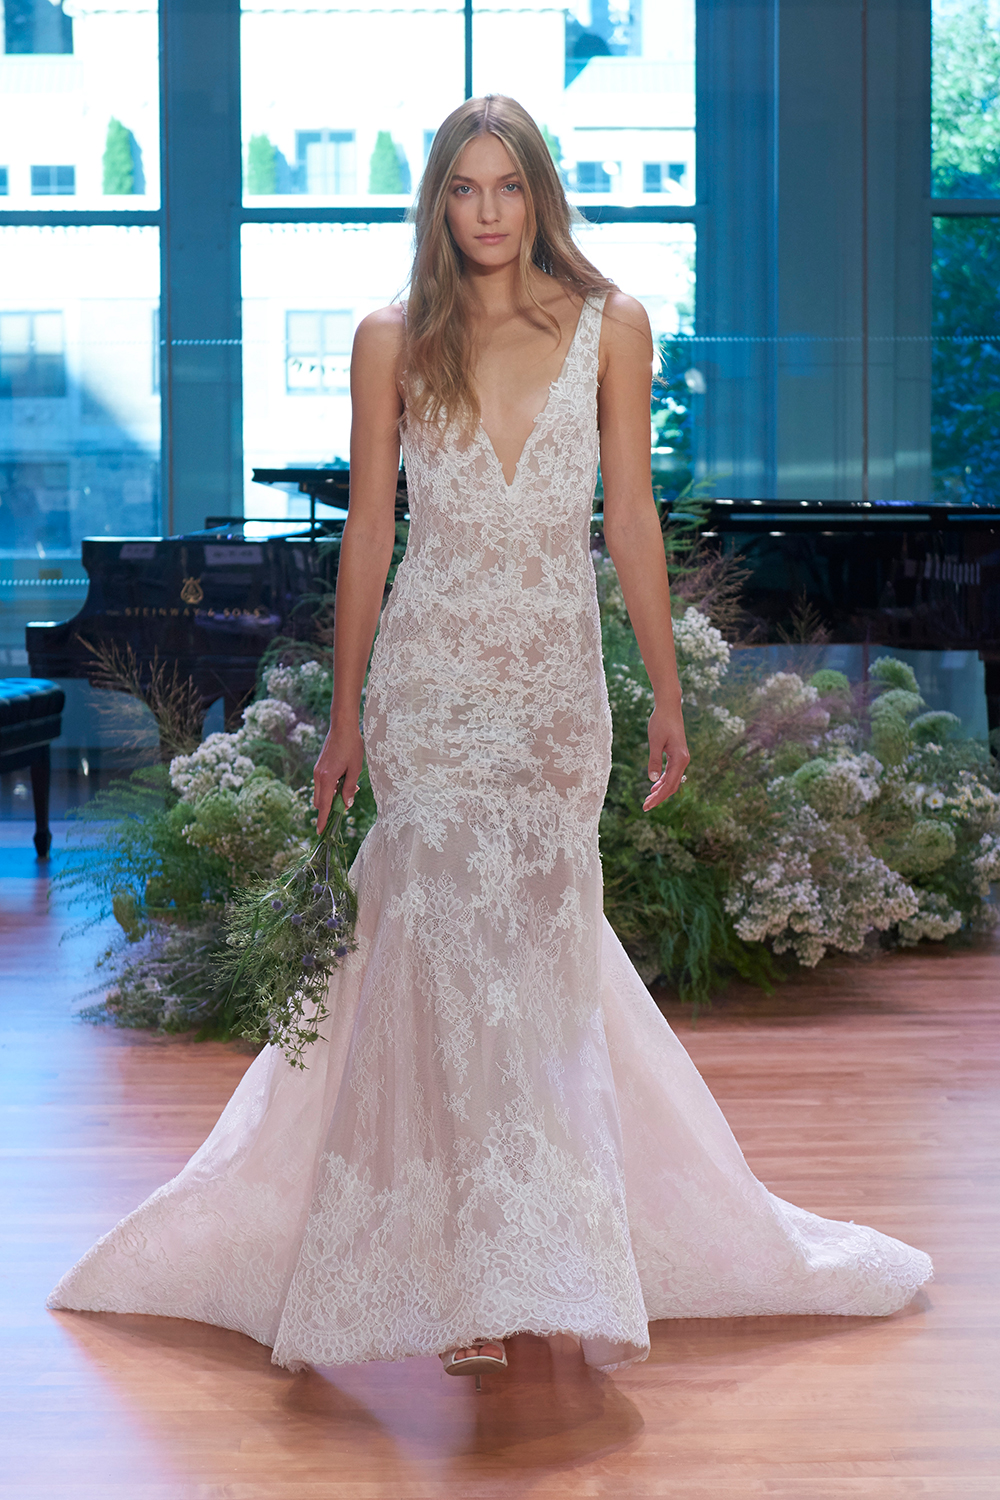 Keaton - Monique Lhuillier Fall 2017 Bridal Collection. www.theweddingnotebook.com